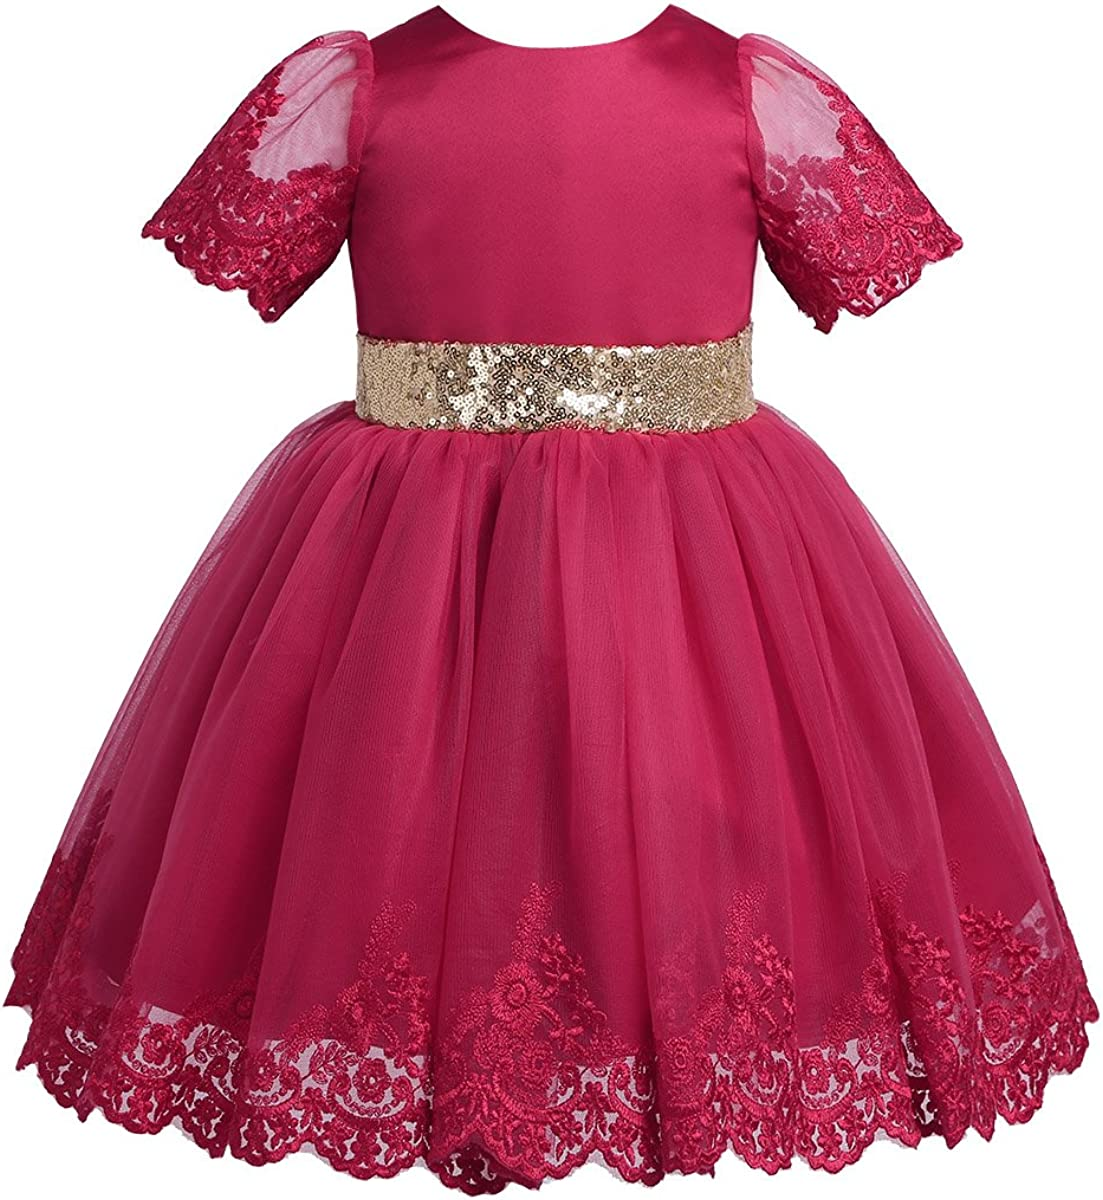 YiZYiF Sequins Baby Girls' まとめ買い特価 訳あり Embroidery Ch Floral Princess Wedding